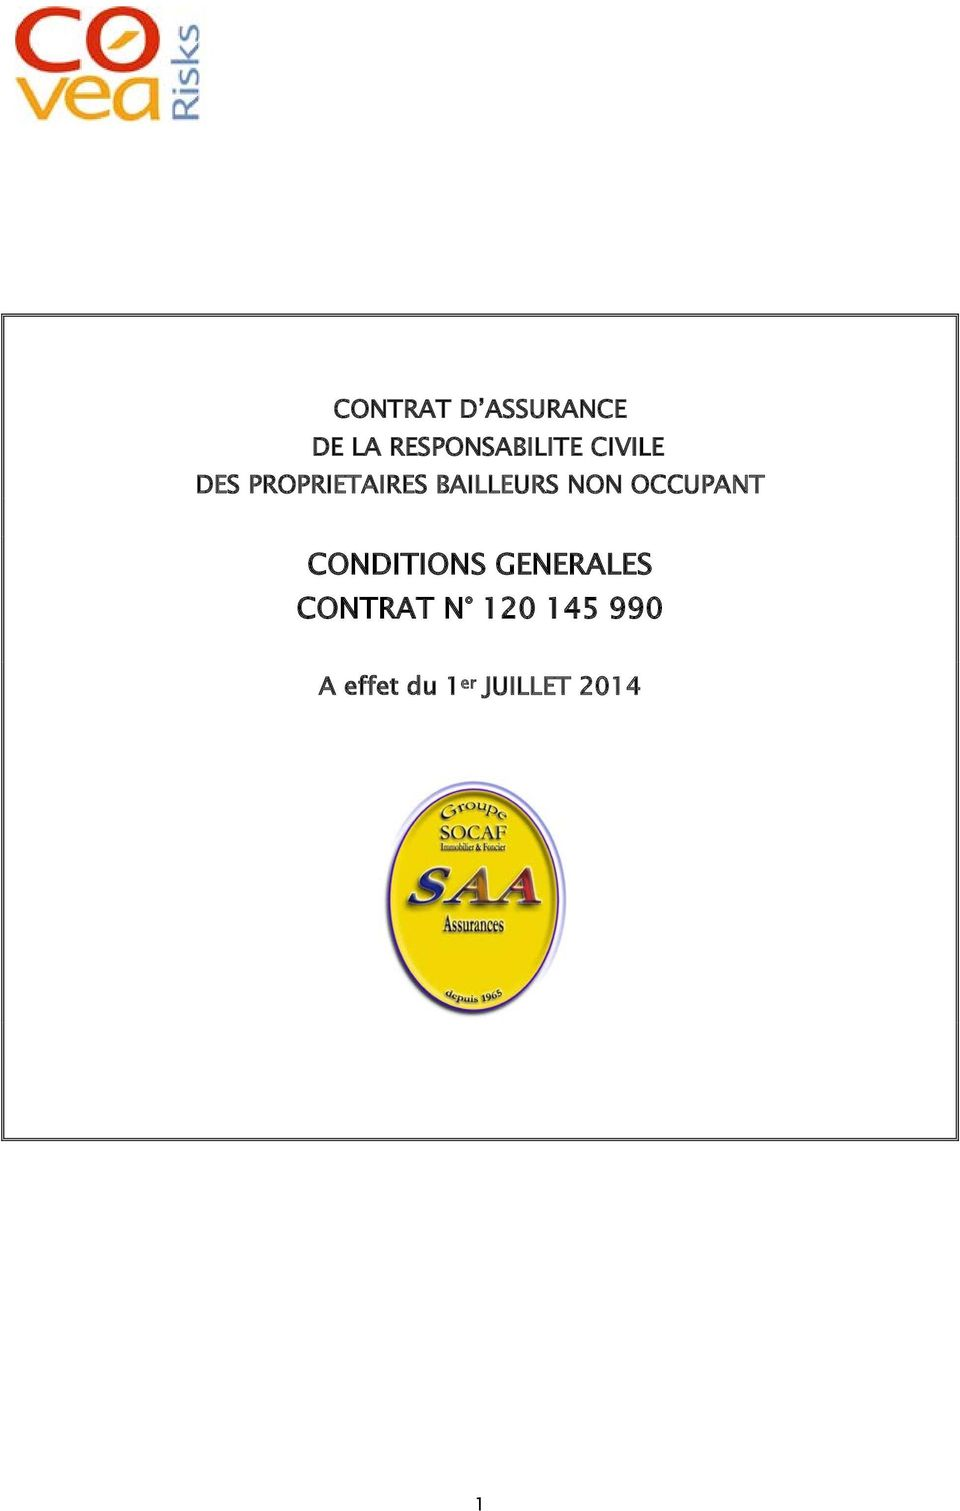 OCCUPANT CONDITIONS GENERALES CONTRAT N